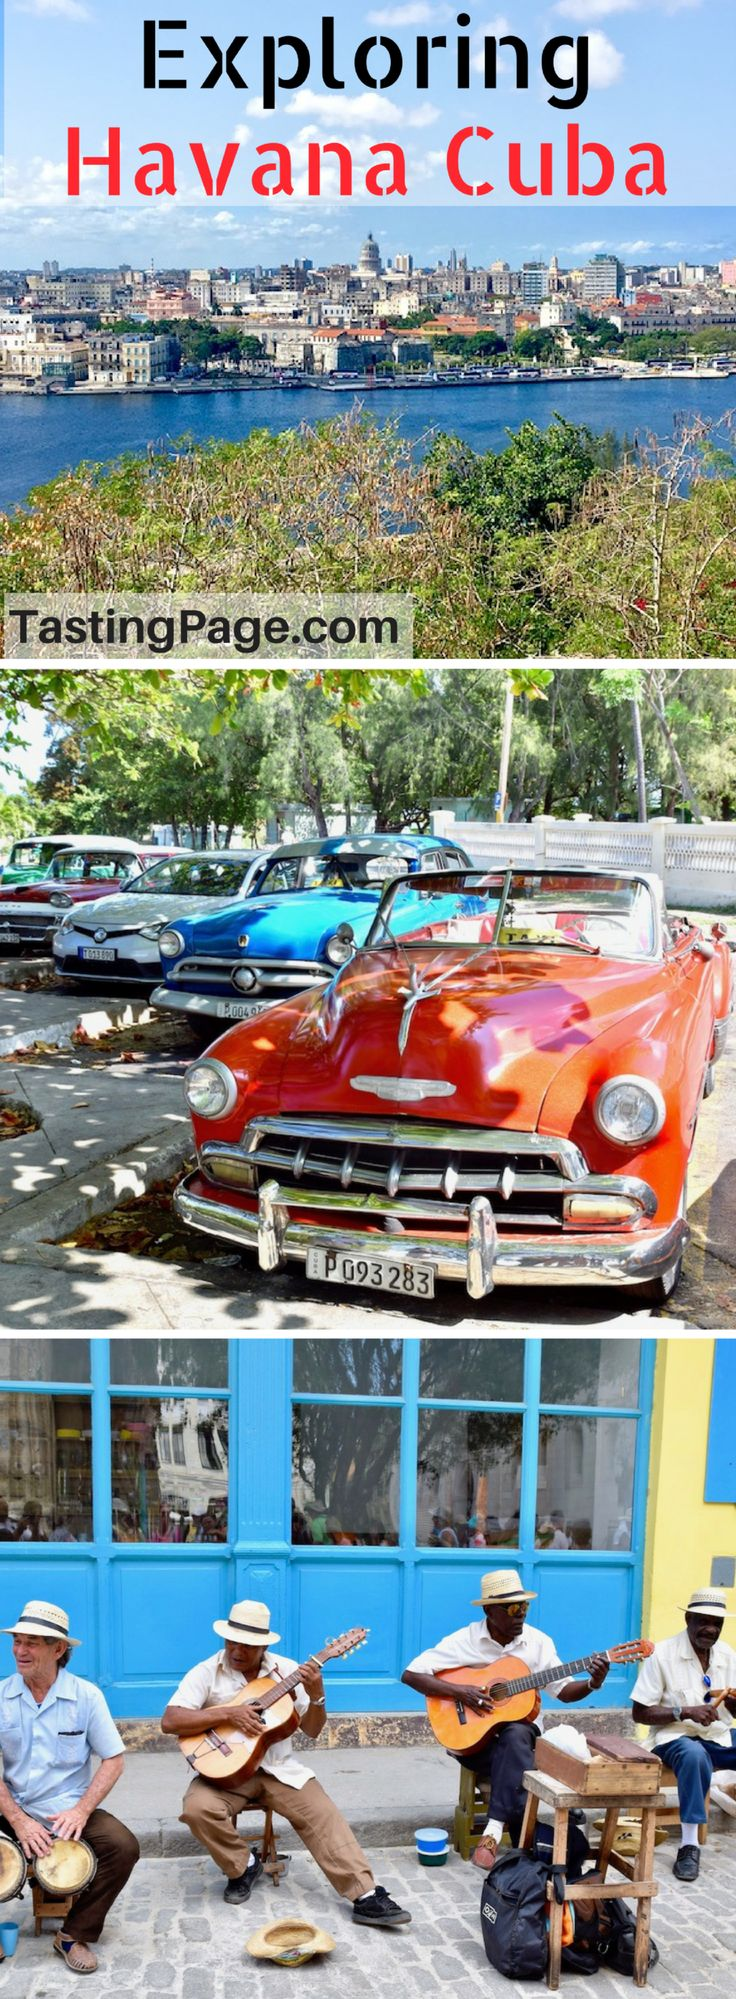 Havana Cuba is a new travel destination for Americans, and a visit provides a unique glimpse into a vibrant and colorful culture. Here's what to see and do on your first visit to Havana Cuba | TastingPage.com